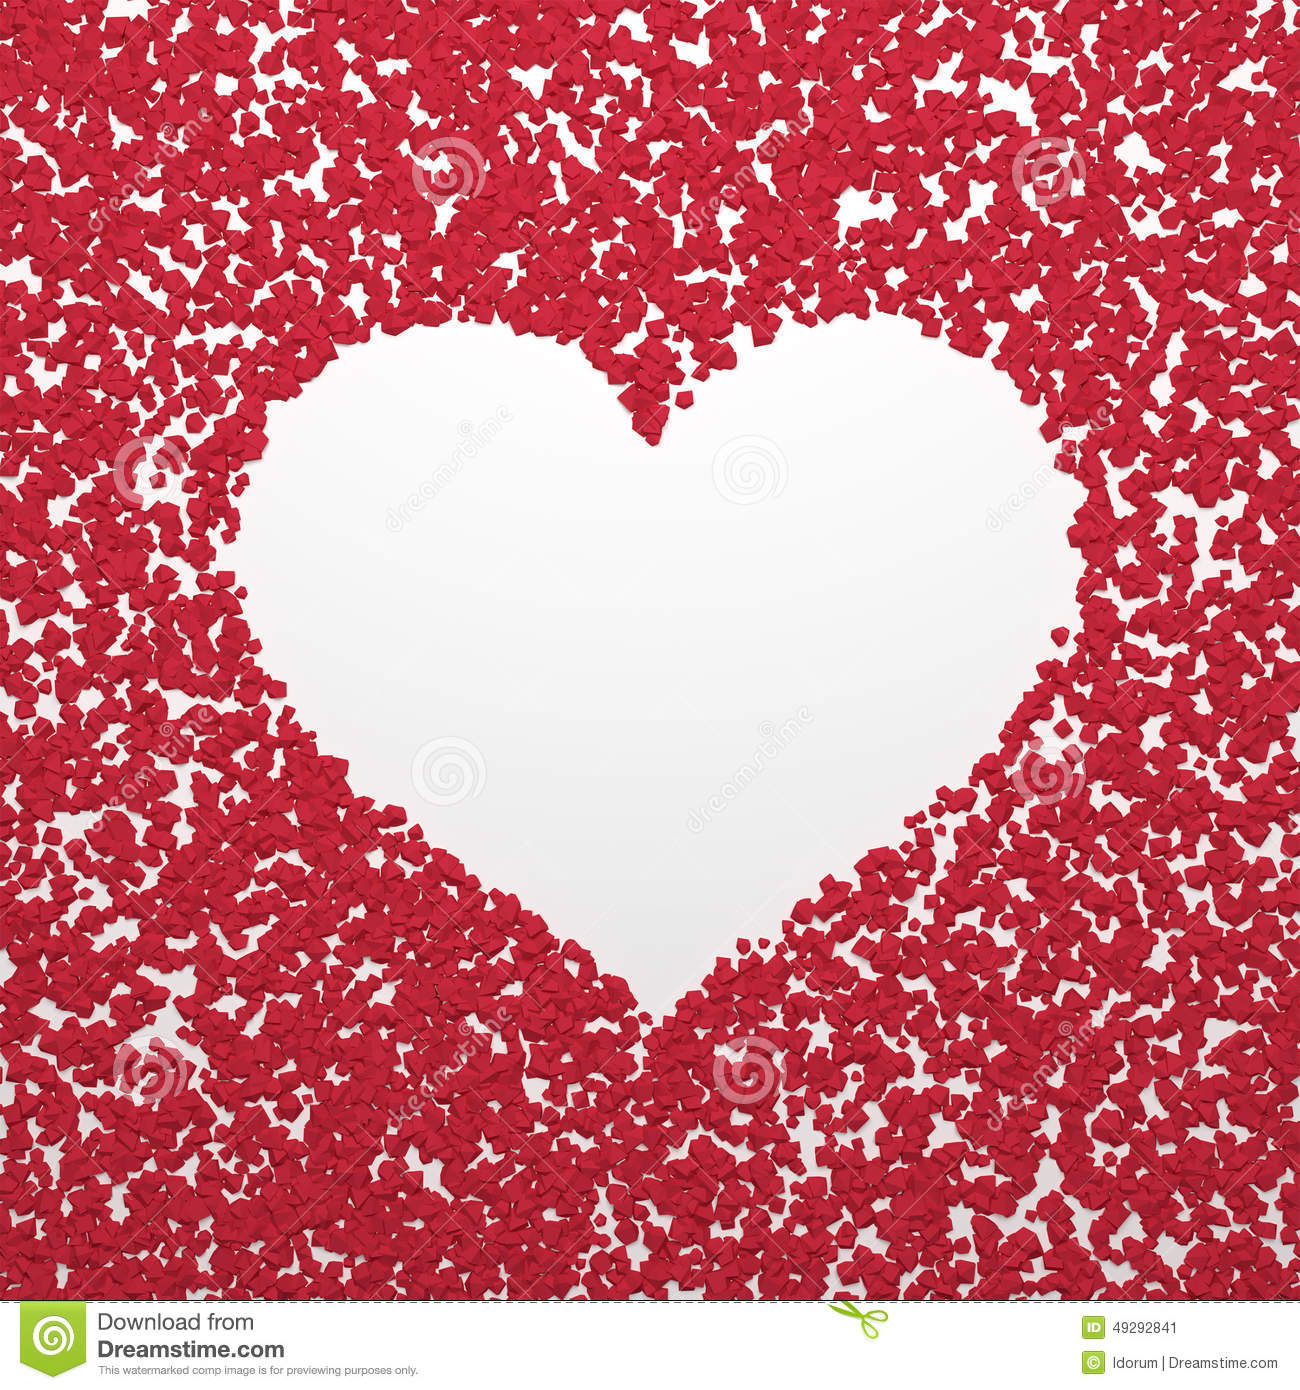 heart love red background - photo #39